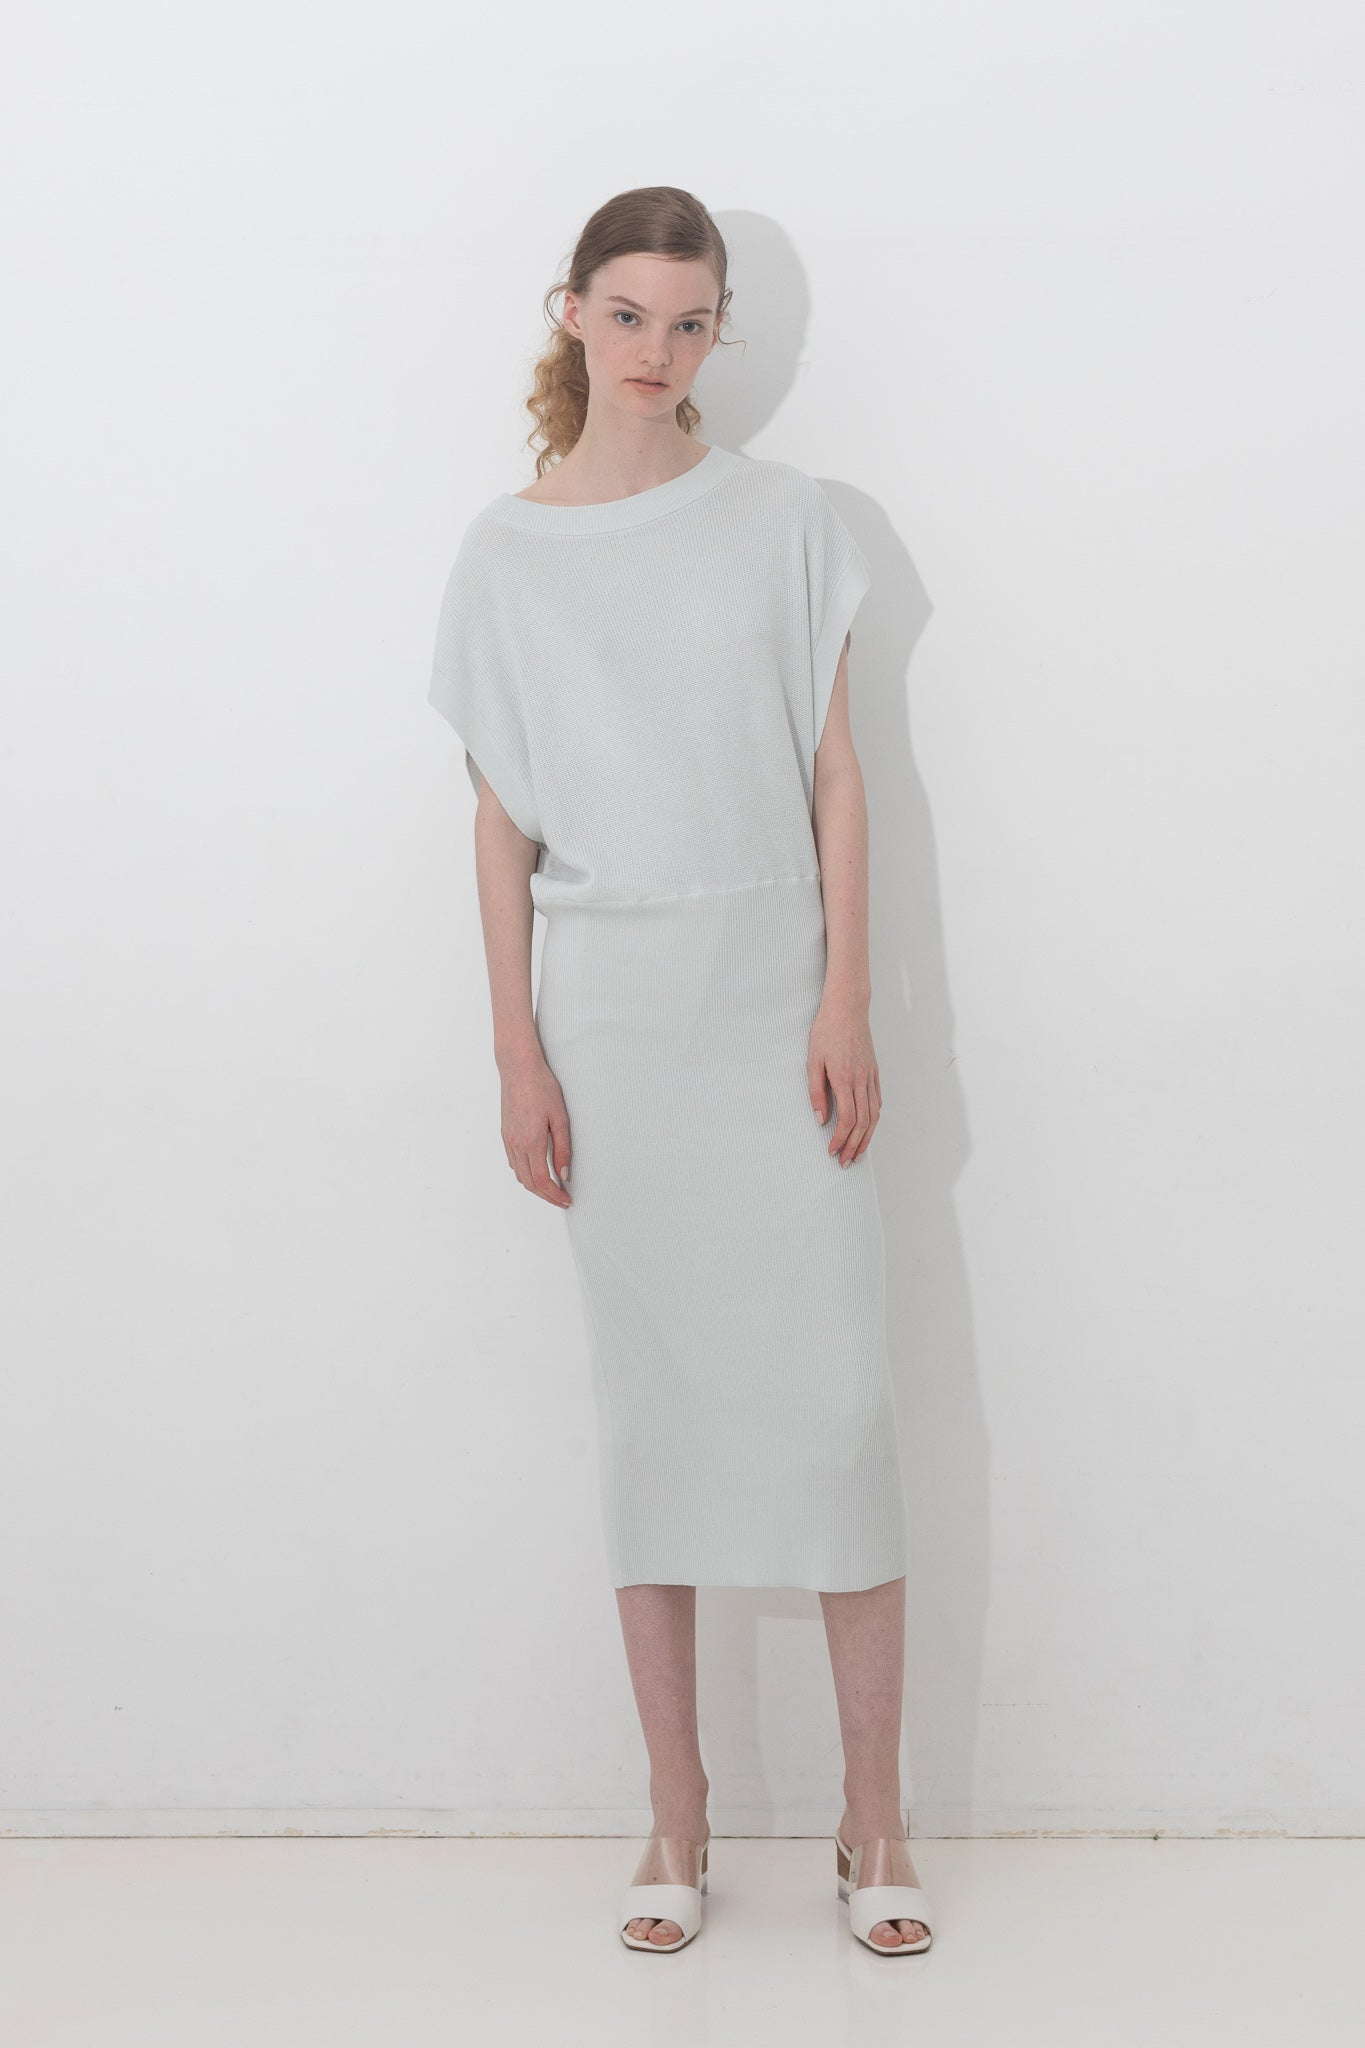 BLOUSING KNIT DRESS【REL201-015】